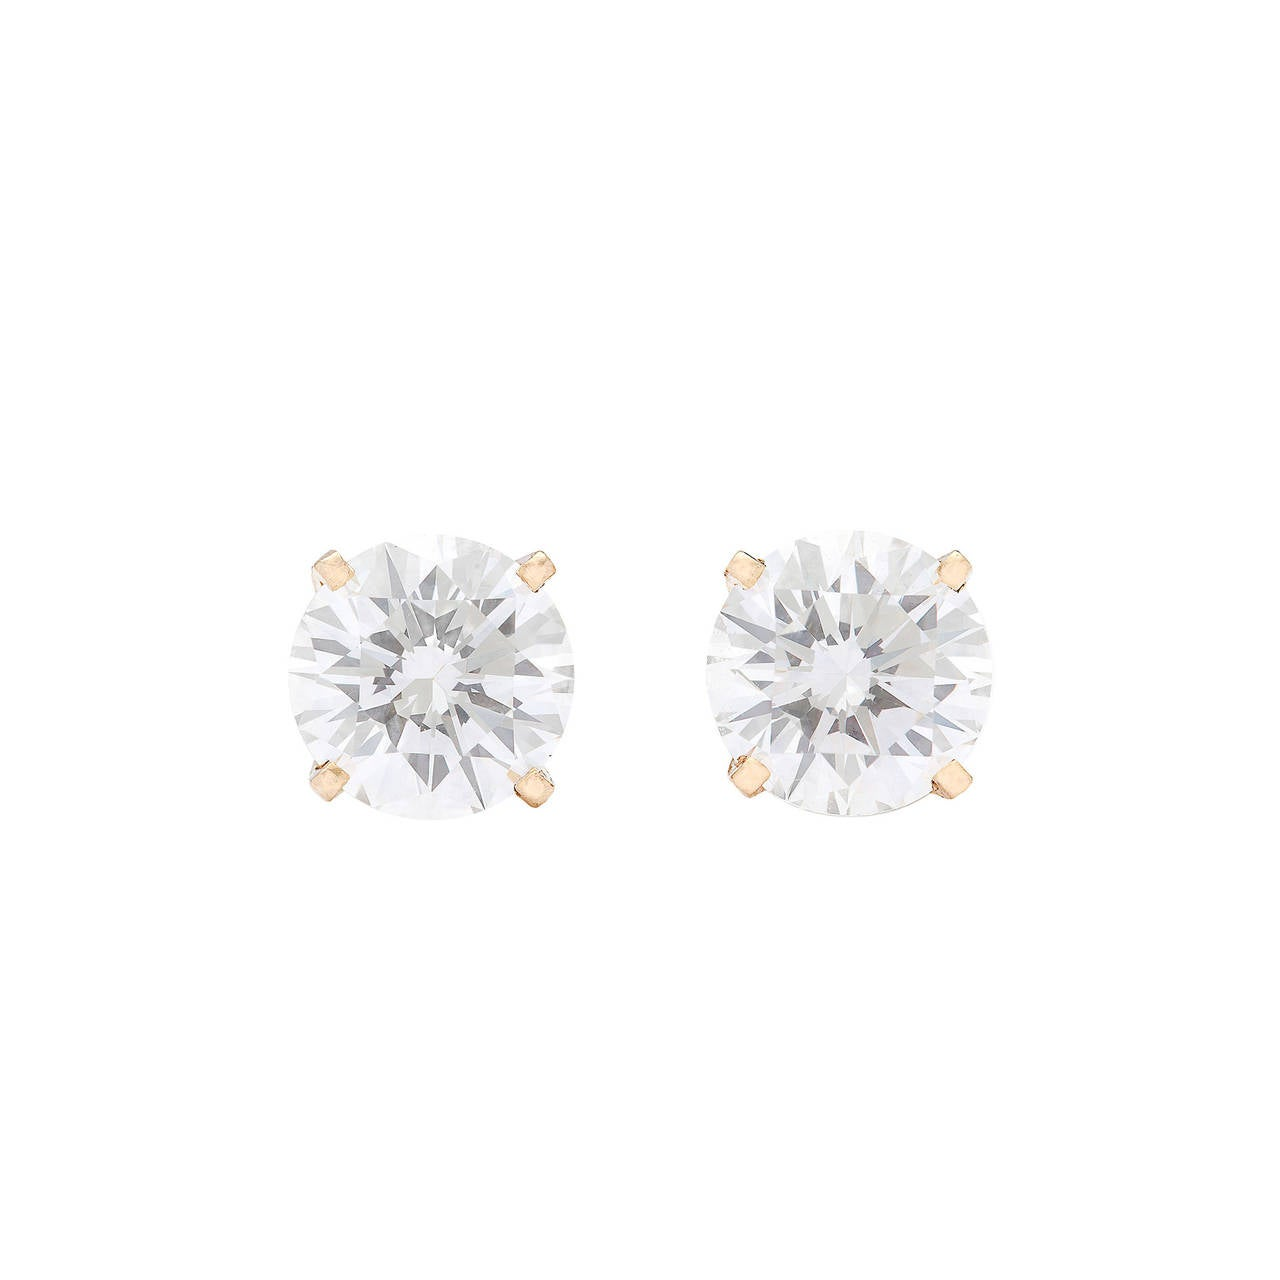 2.04 Carat GIA Cert Round Brilliant Cut Diamond Gold Earrings For Sale